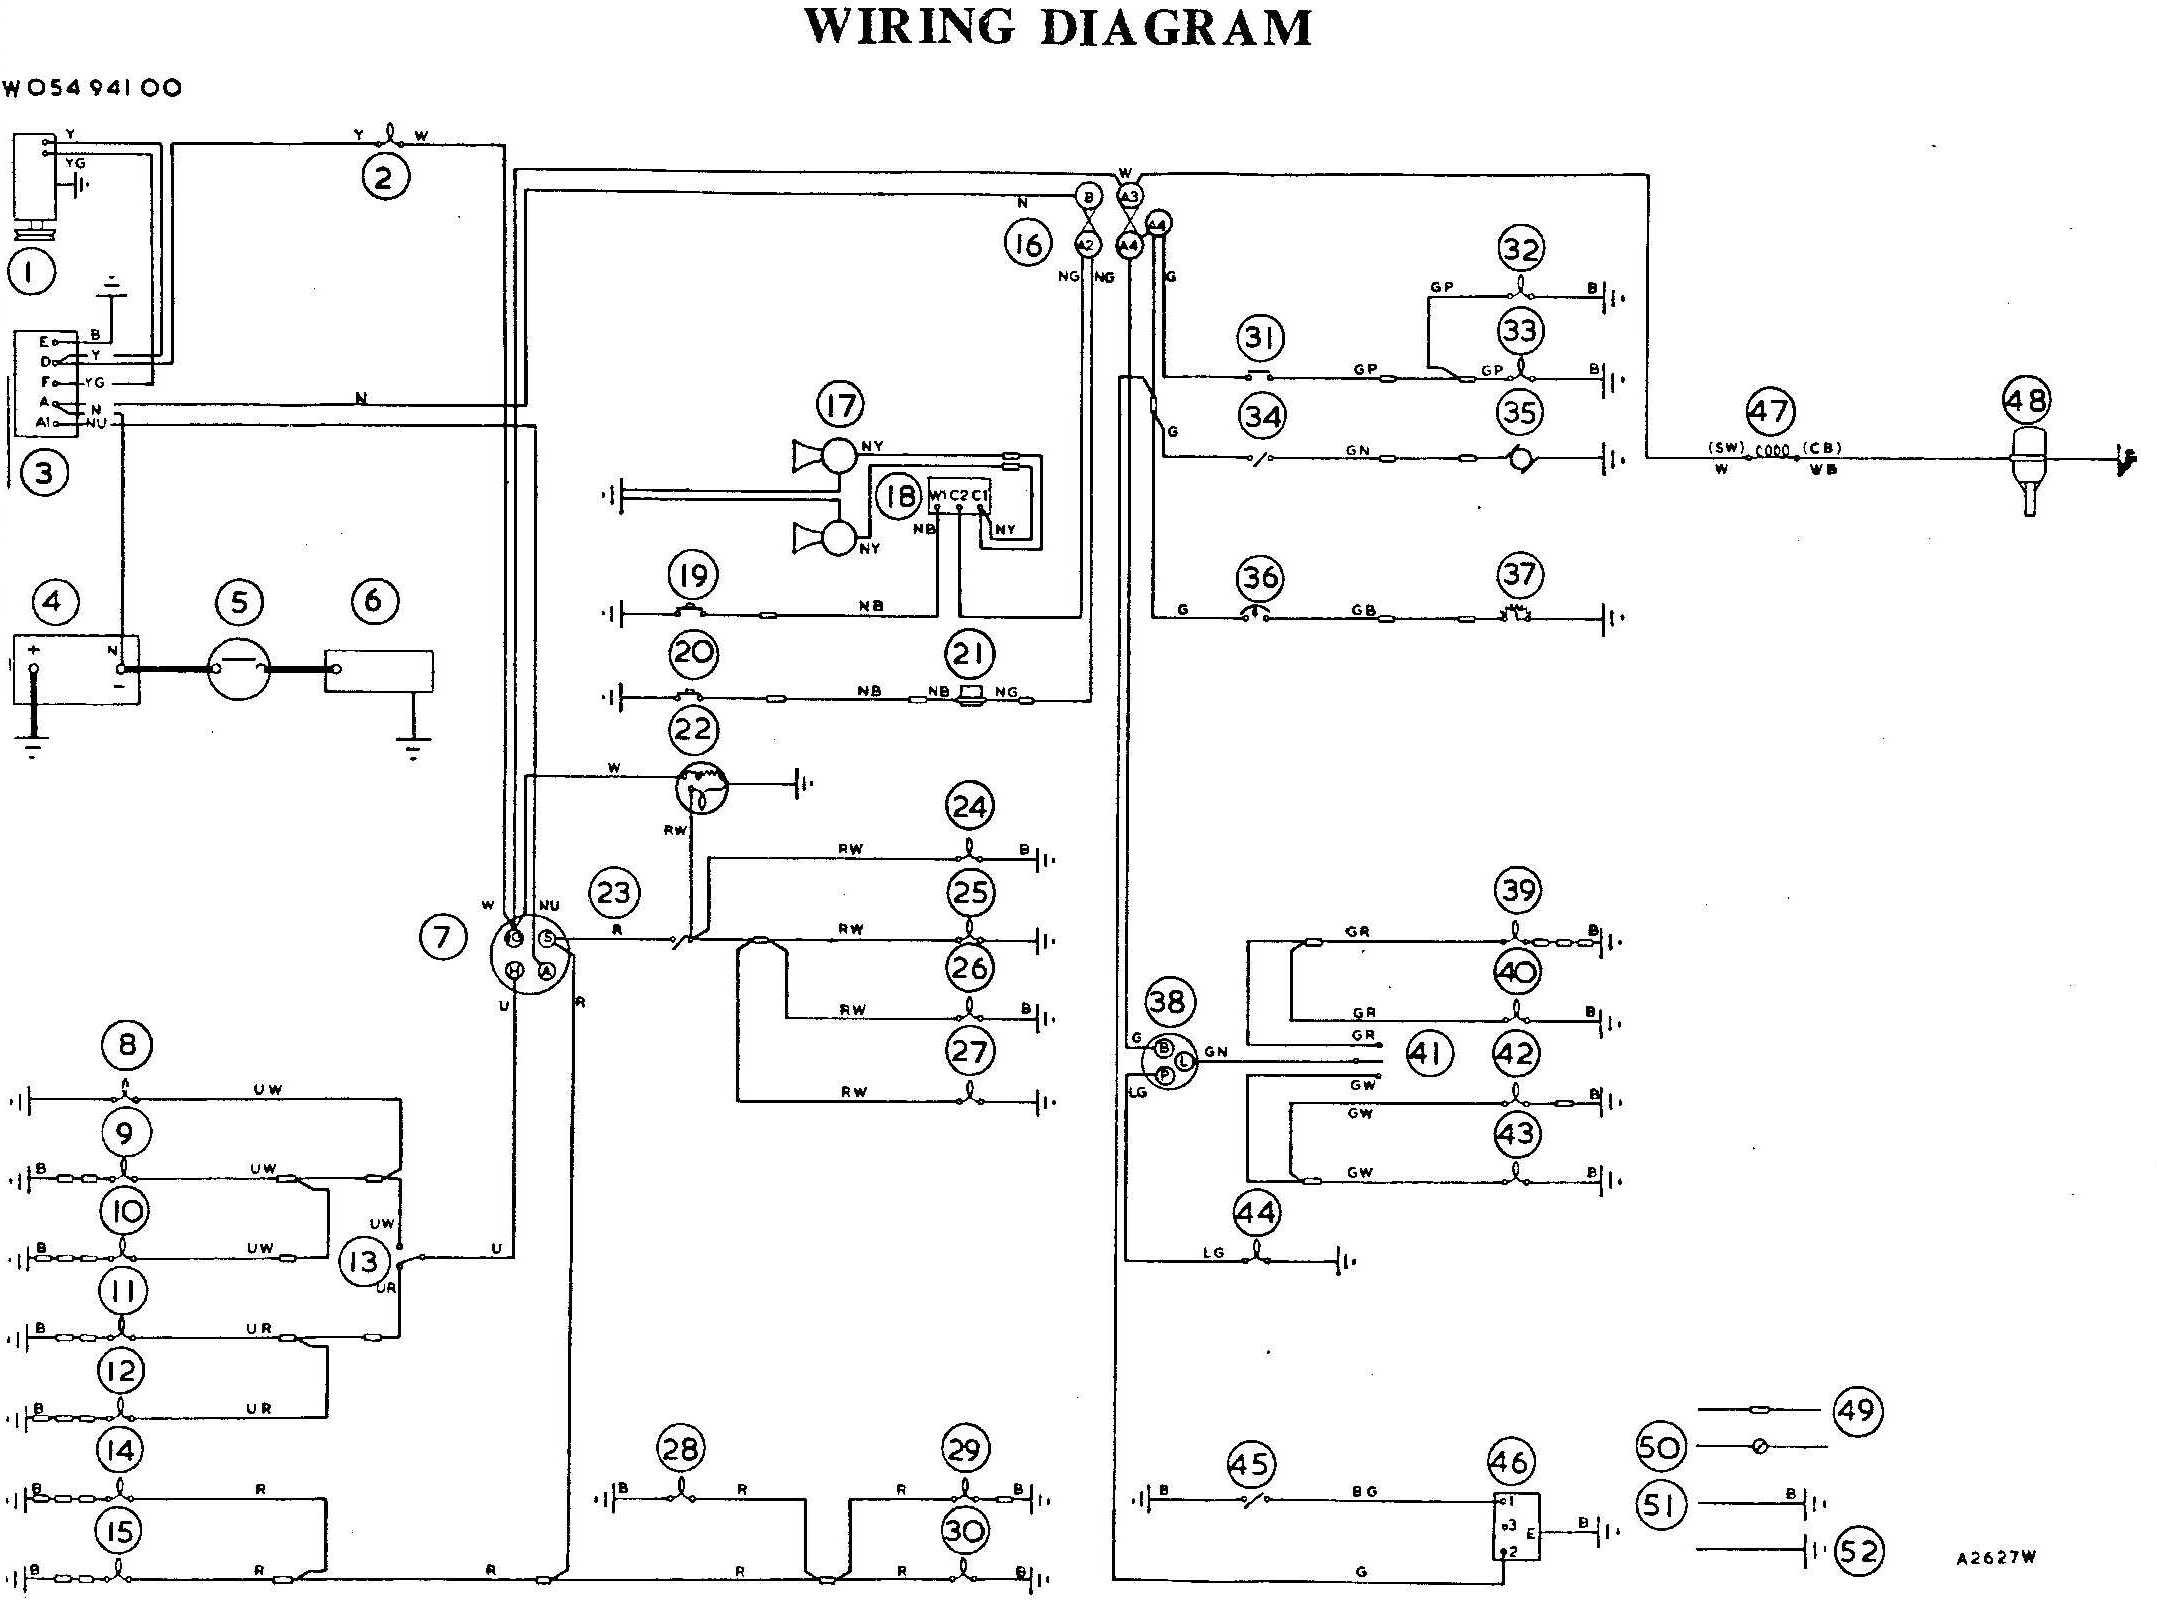 Wiring A Garage Diagram | Wiring Diagram on